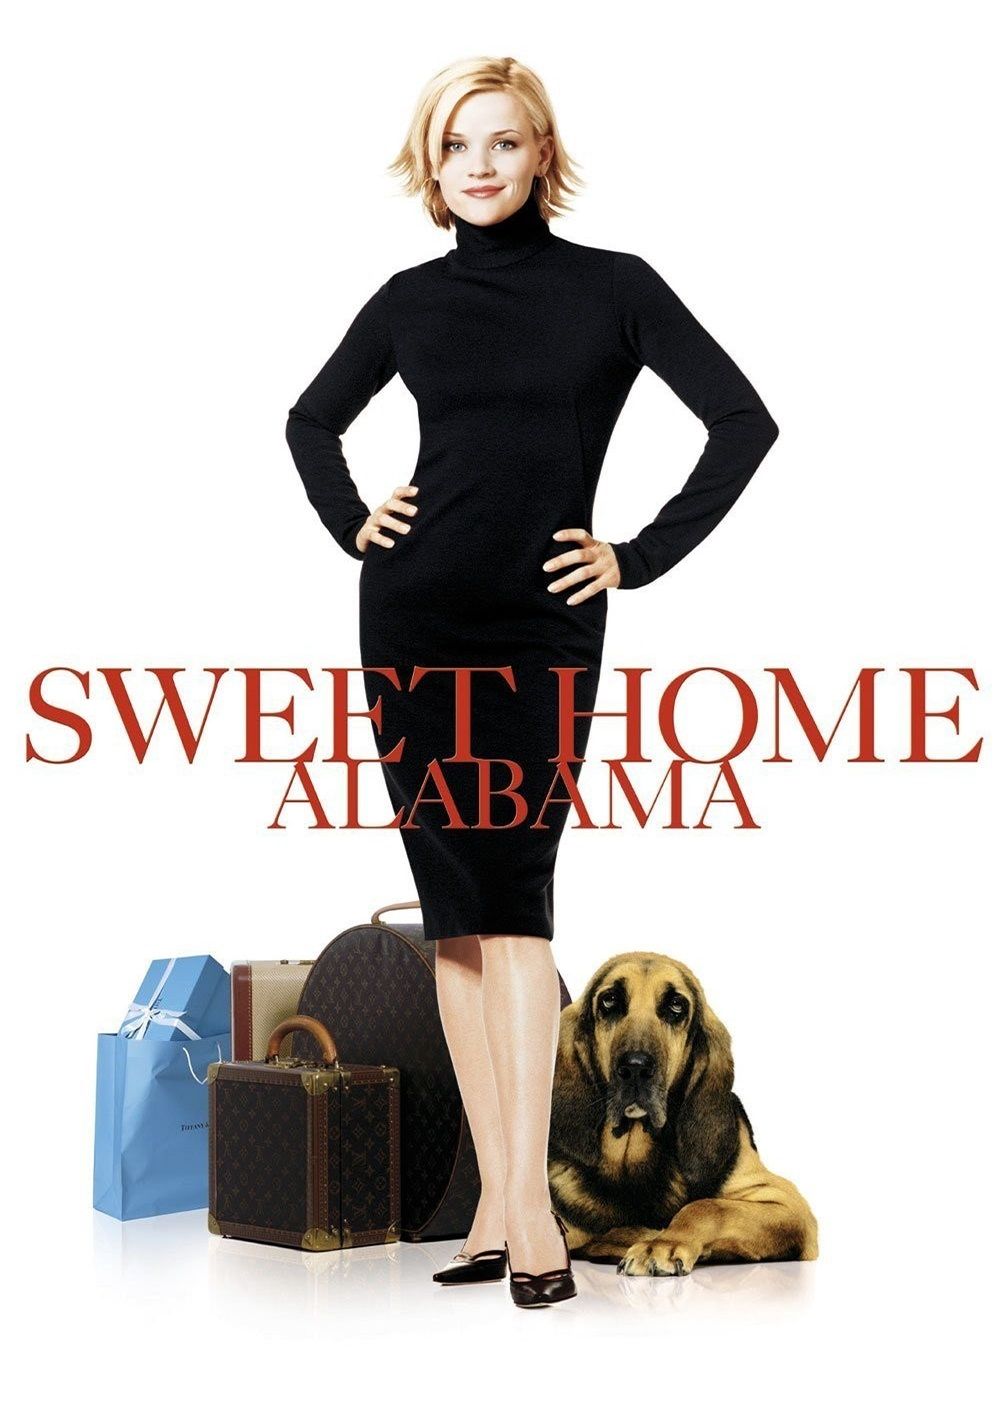 Download sweet home alabama (2002) yify torrent for 1080p mp4.